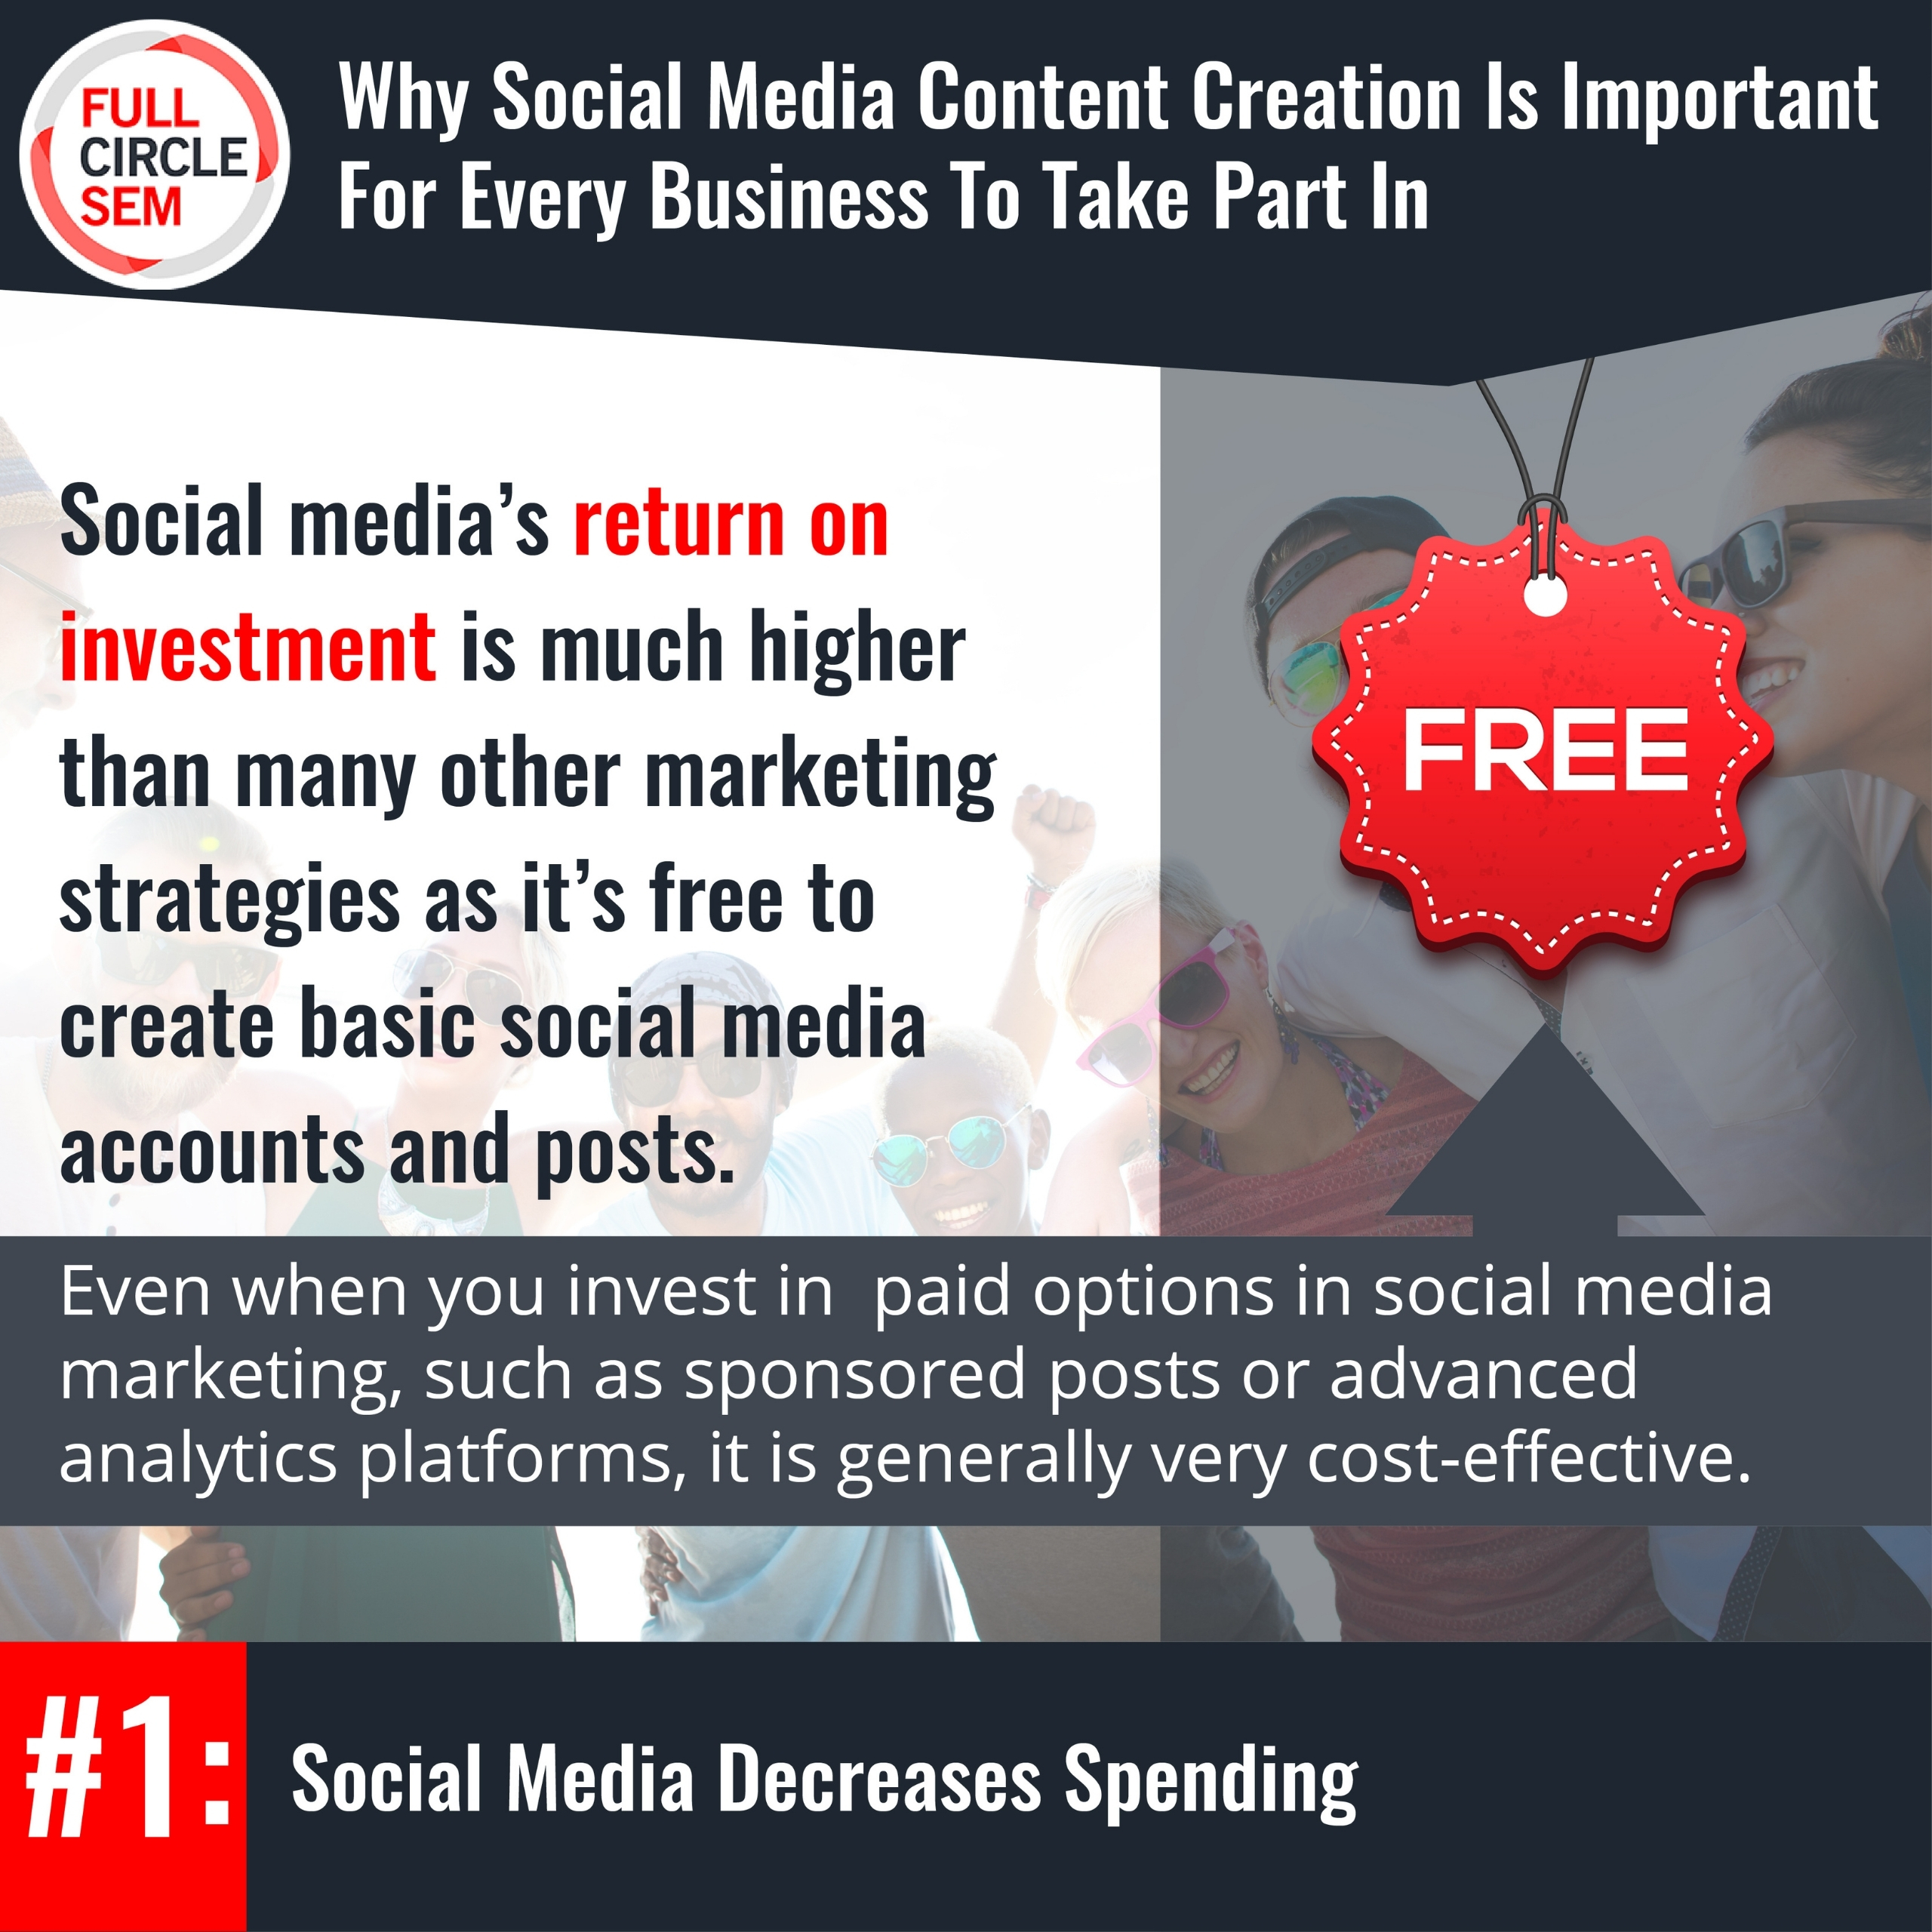 using social media can help to decrease overall marketing spending